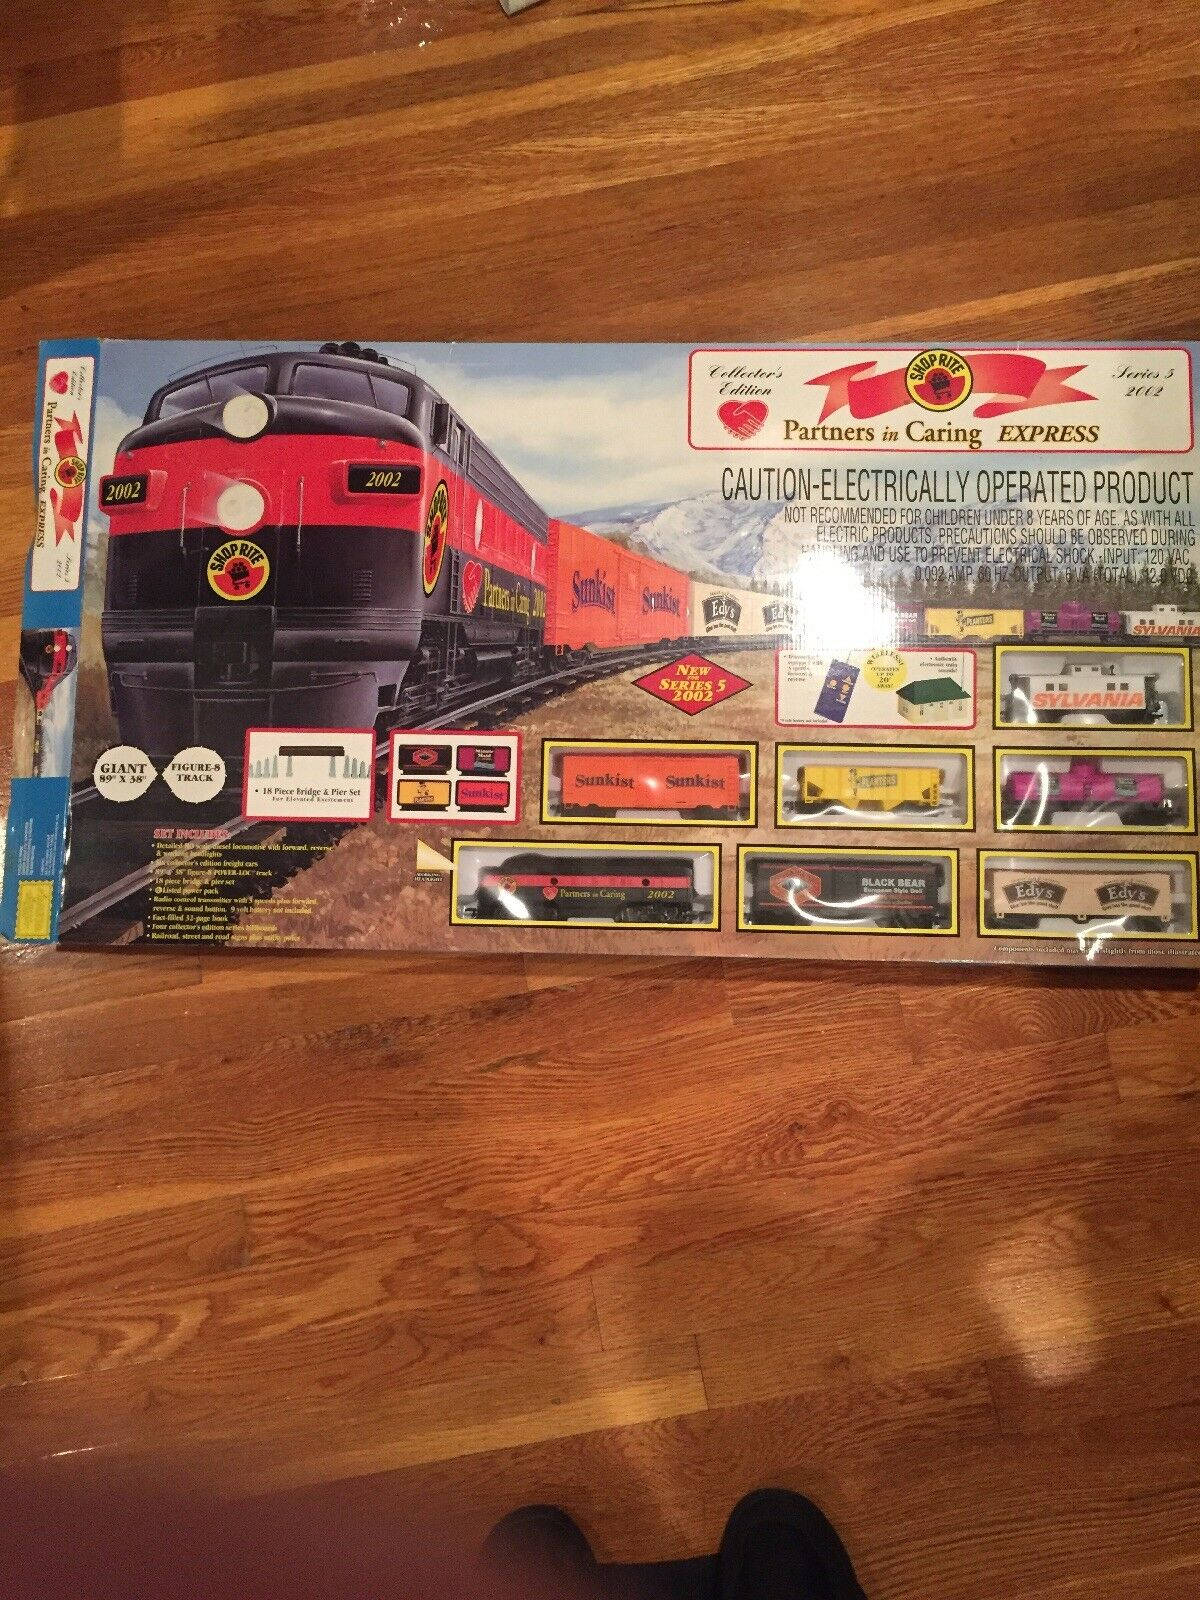 Electric train set Collectors Edition - Shop Rite 89x 38 Sunkist Planters